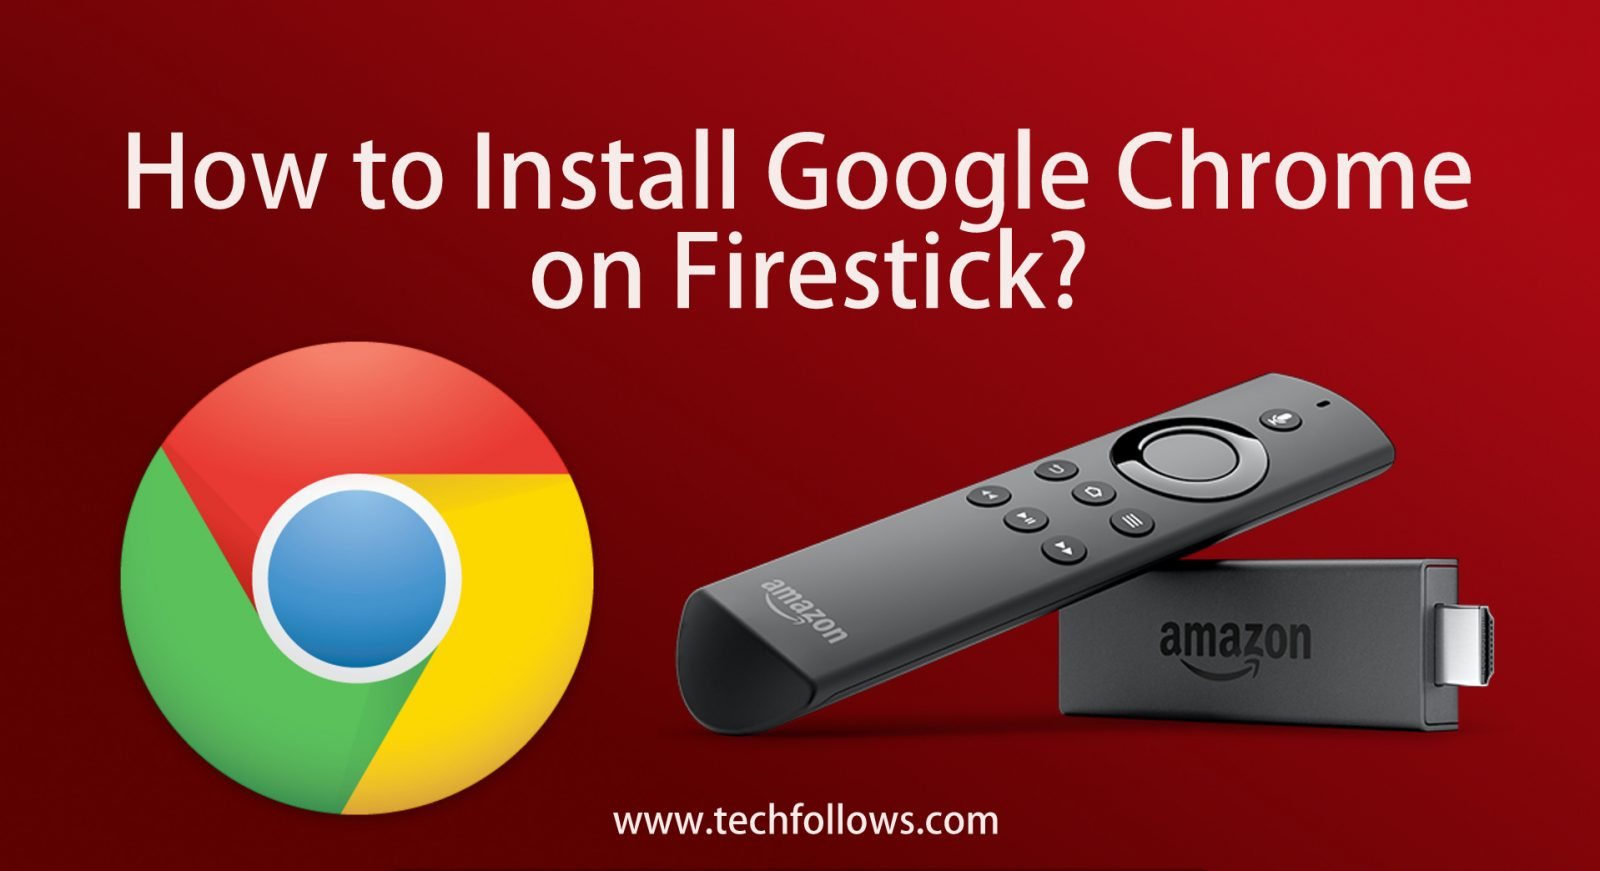 How to Install Google Chrome on Firestick [Guide 2019